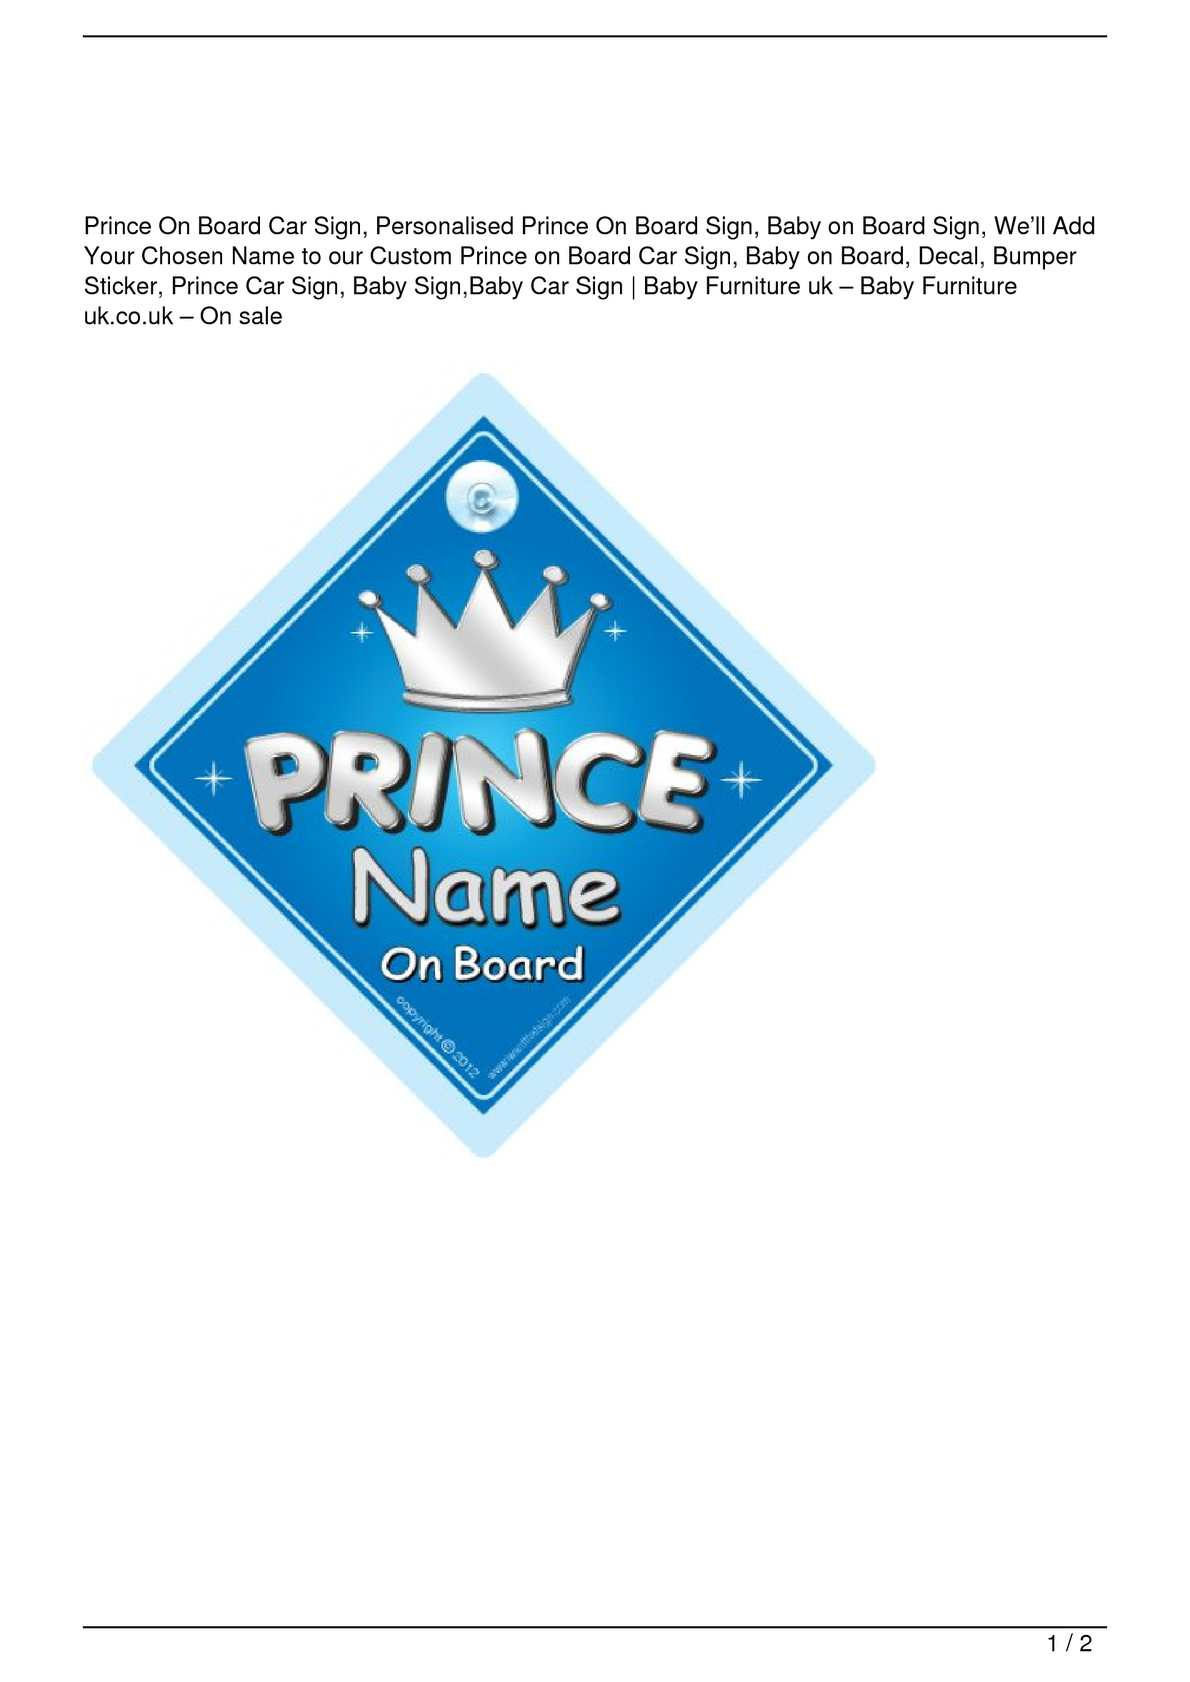 Crown Prince Haroon On Board Personalised Boy Car Sign Child Gift